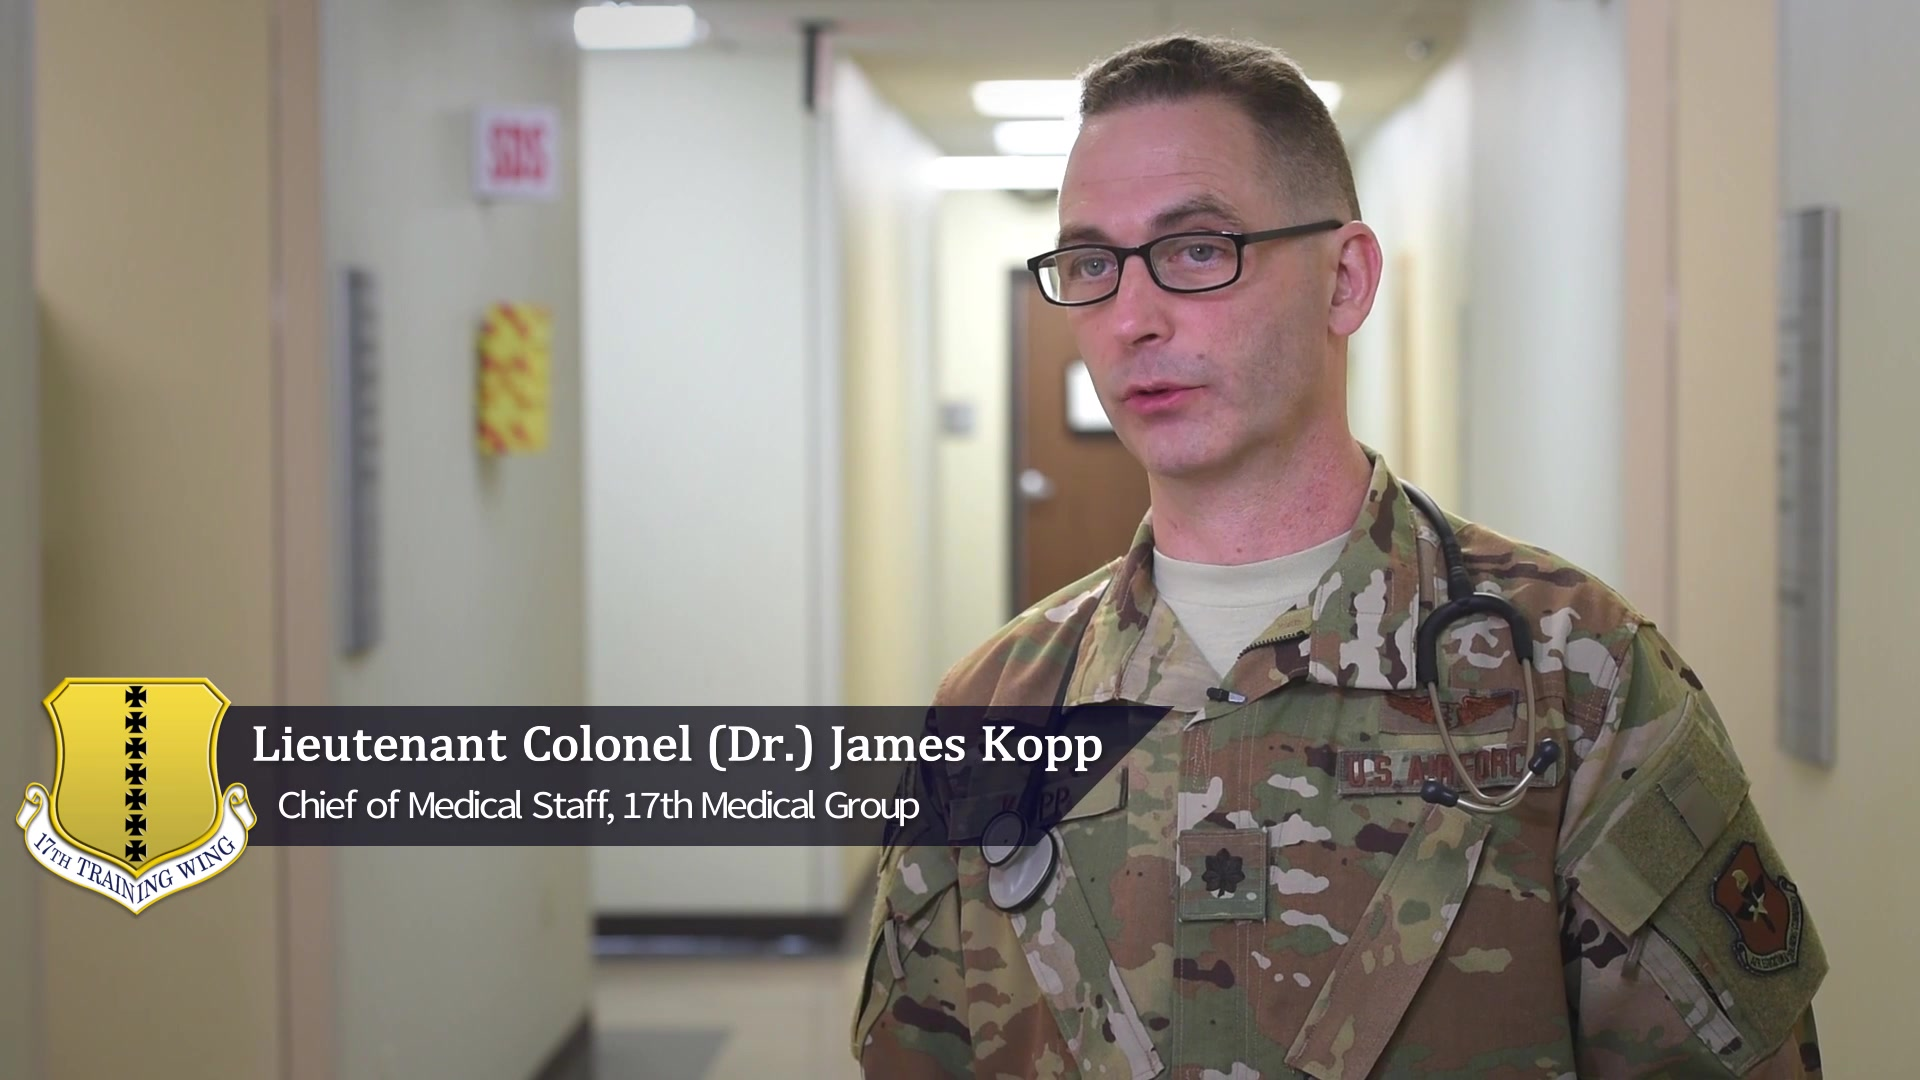 Dr. James Kopp, Chief of Medical Staff for the 17th Medical Group, offers some important tips on when to seek medical attention for concerns related to the coronavirus or COVID-19.